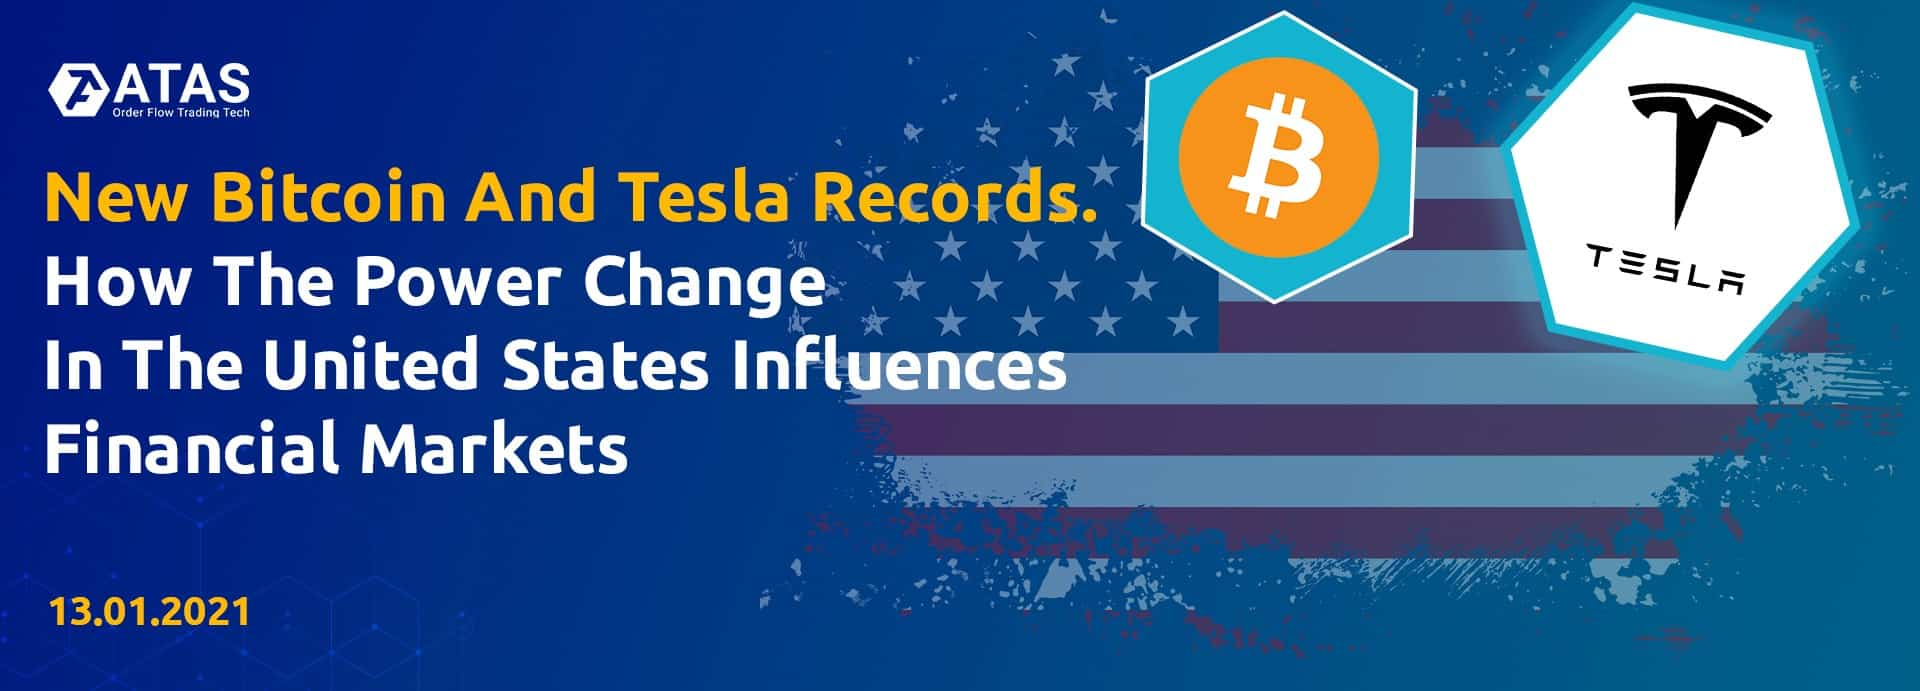 New Bitcoin And Tesla Records. How The Power Change In The United States Influences Financial Markets